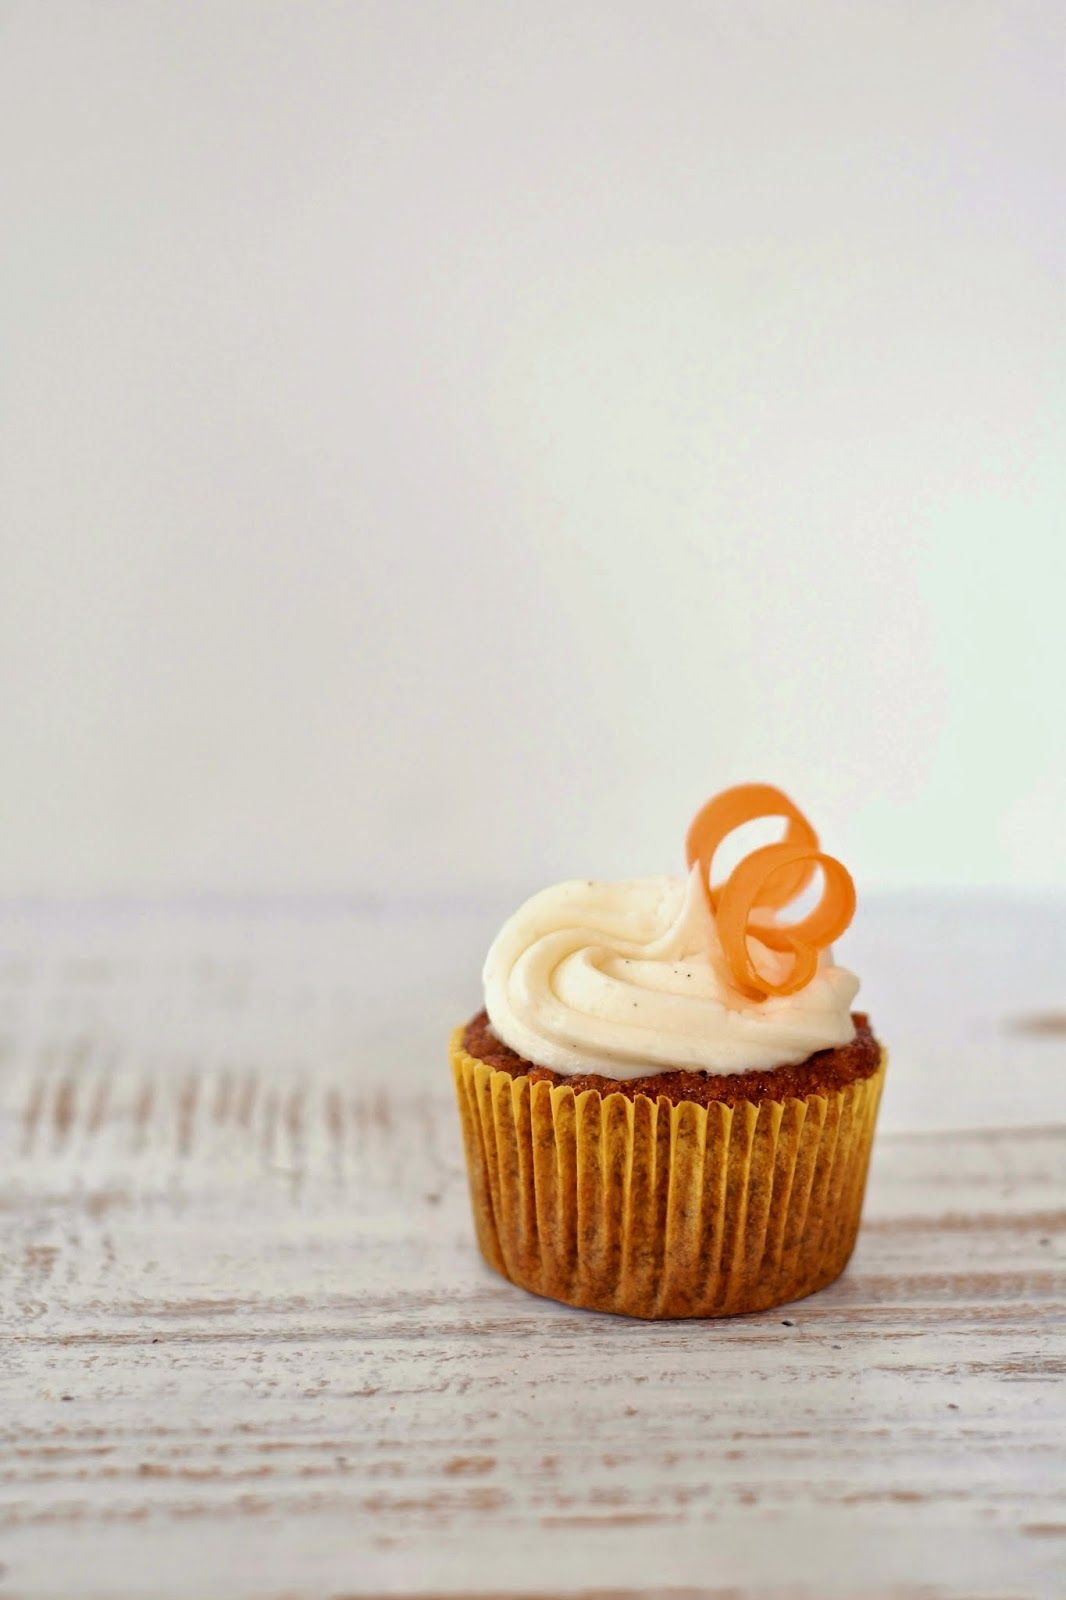 Carrot Cake Cupcakes With Vegan Vanilla Bean Cream Cheese Frosting